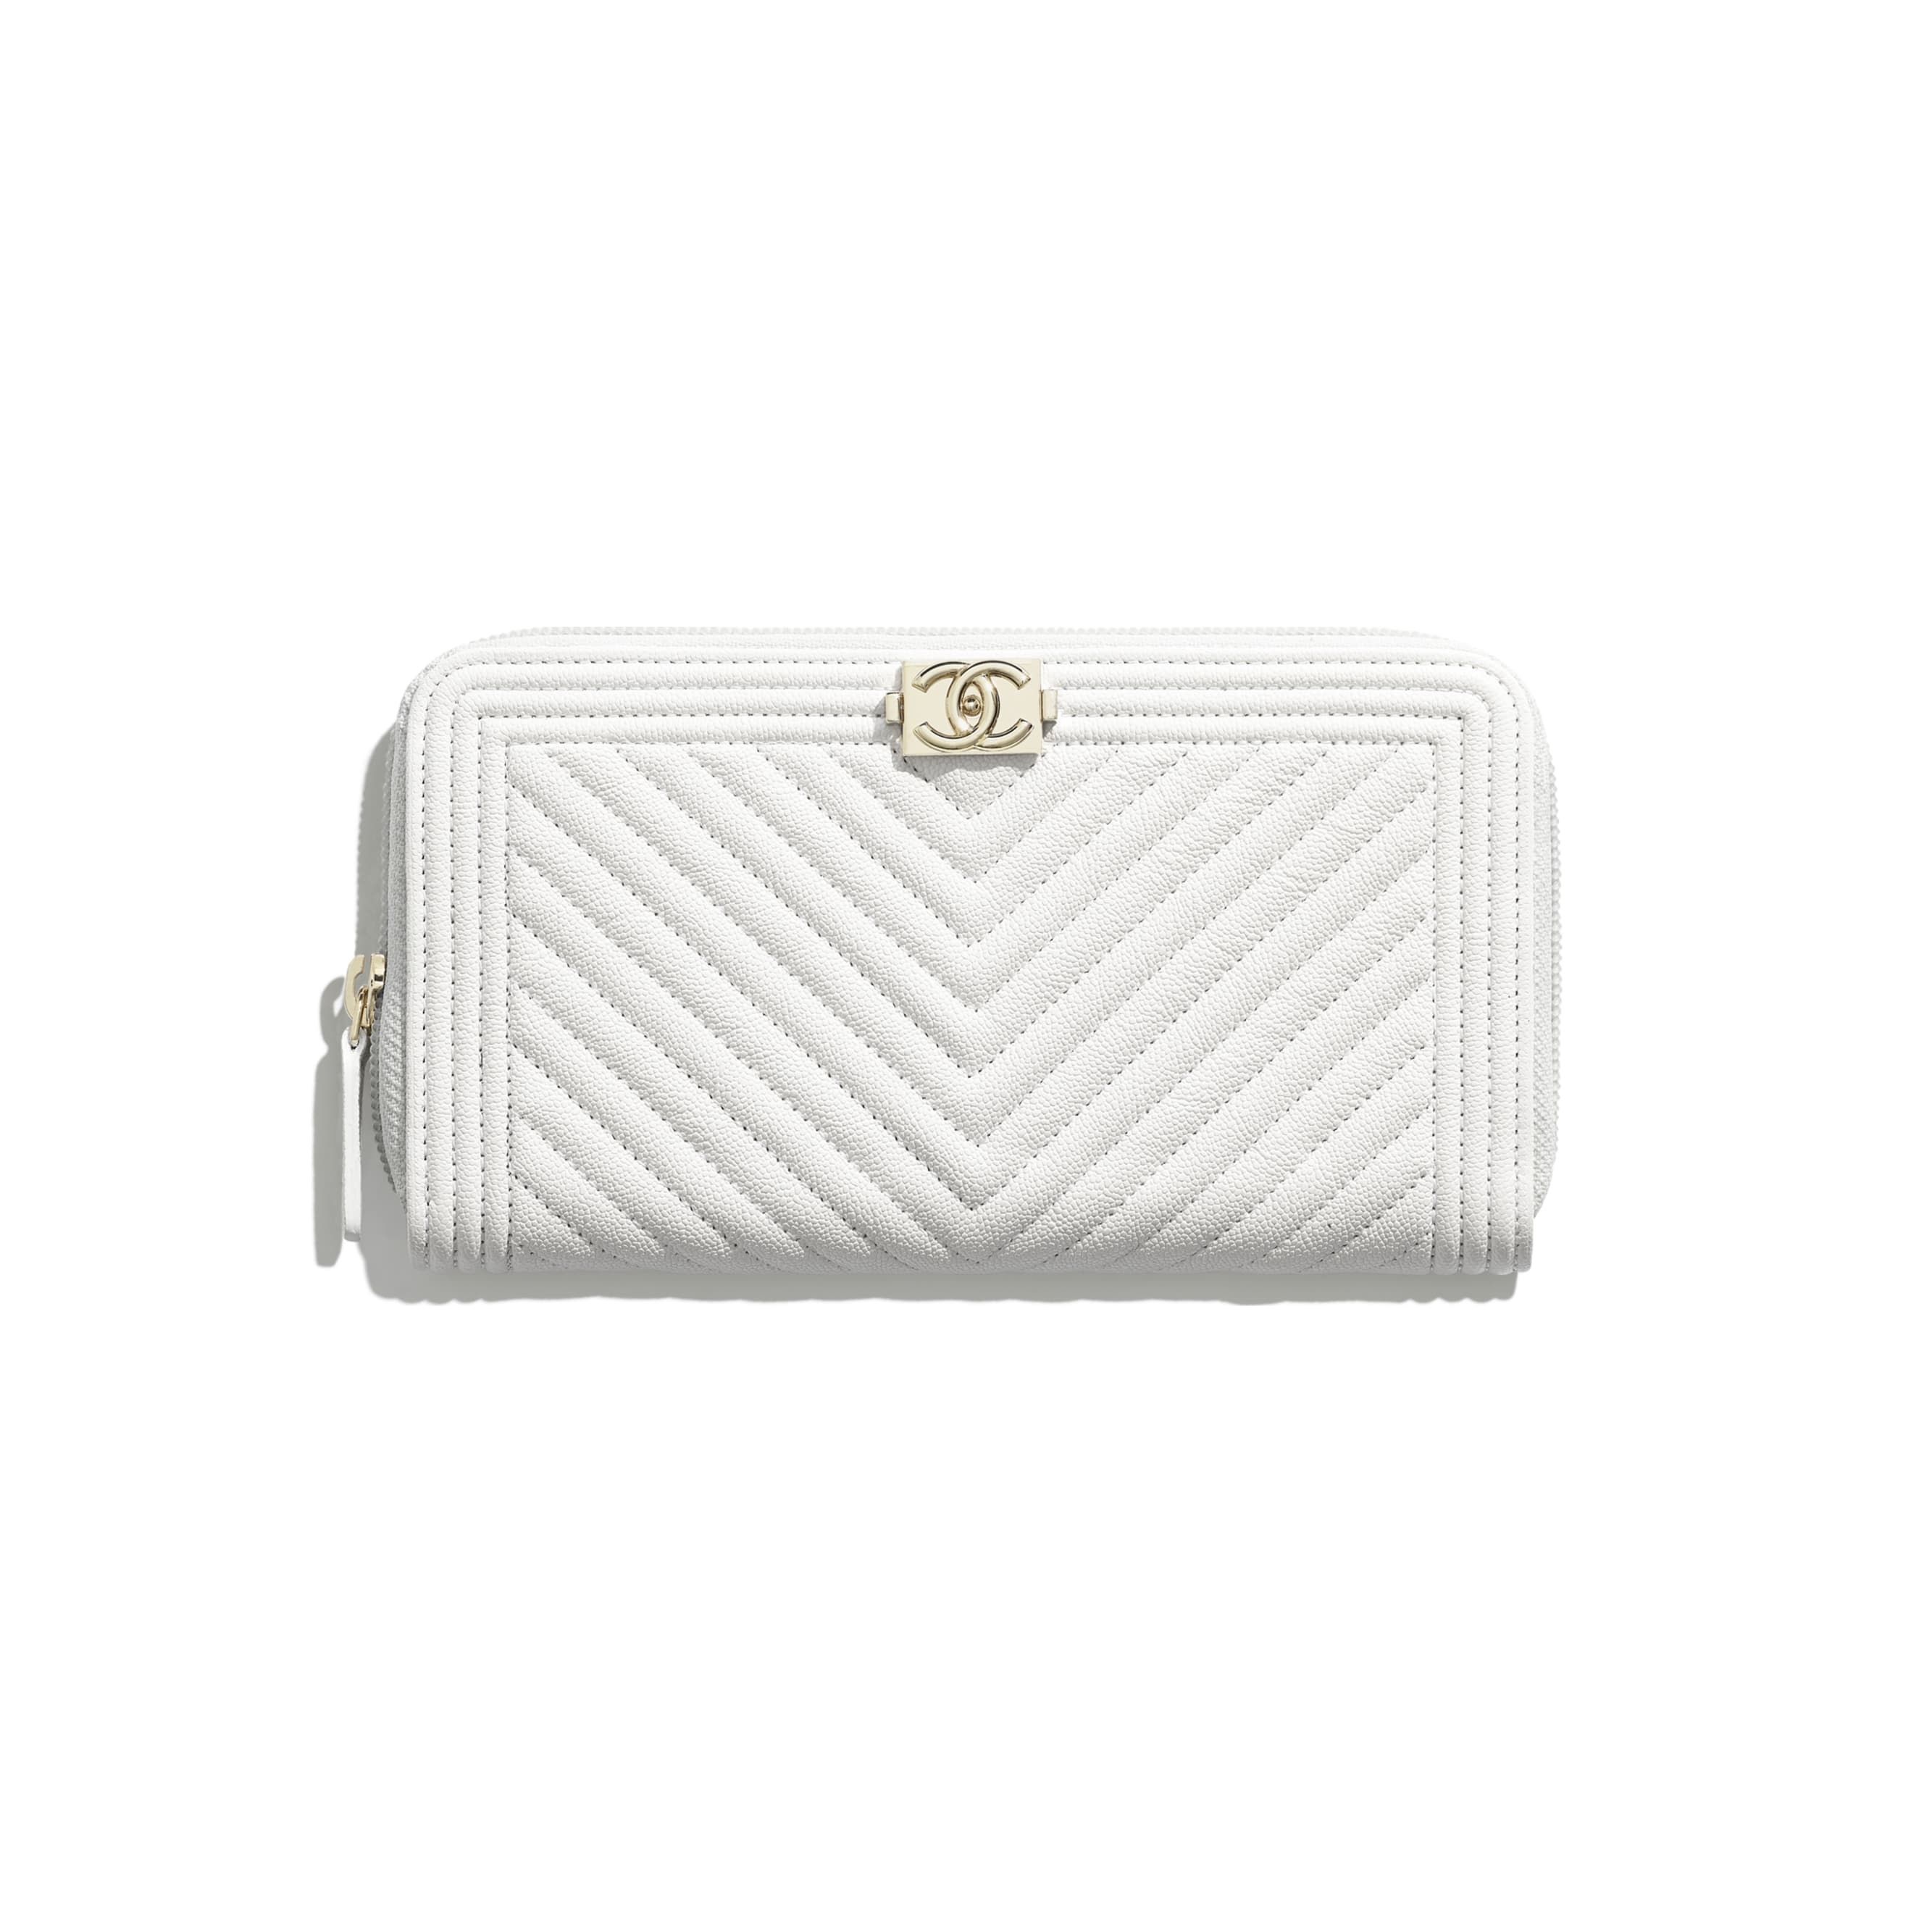 BOY CHANEL Long Zipped Wallet - White - Grained Calfskin & Gold-Tone Metal - CHANEL - Default view - see standard sized version